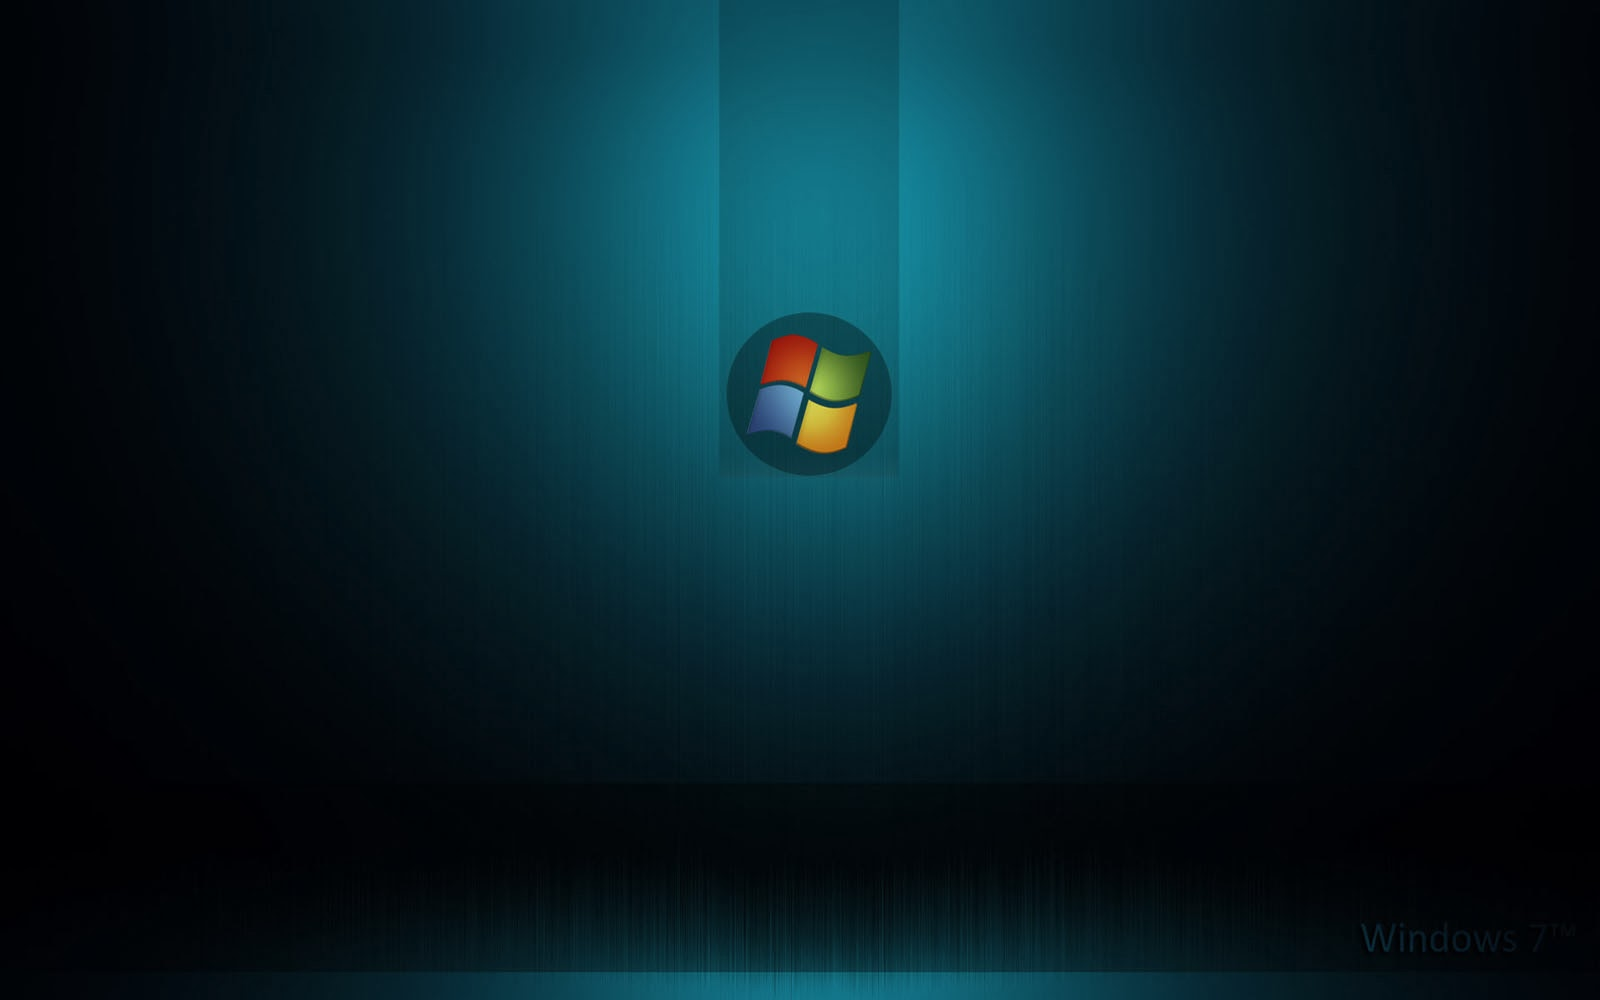 microsoft windows wallpapers by gifteddeviant - photo #12